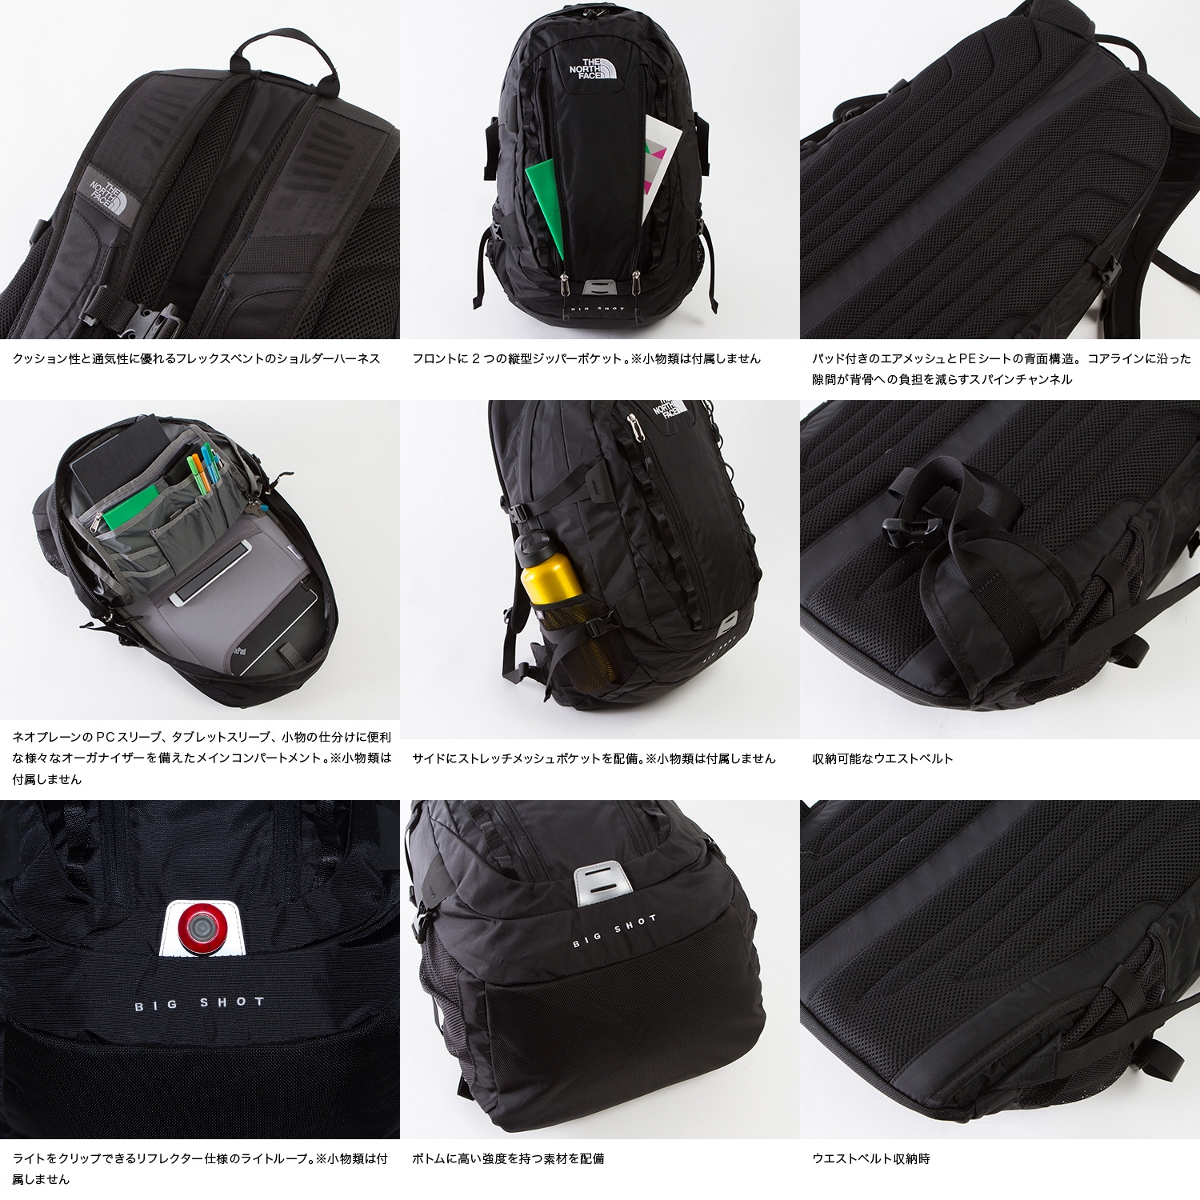 Fill out the review at 500 yen discount ☆ 2013 ' backpack / bag / daypack new autumn/winter! Business big shots 2 (BIG SHOT II) Saturday and Sunday!